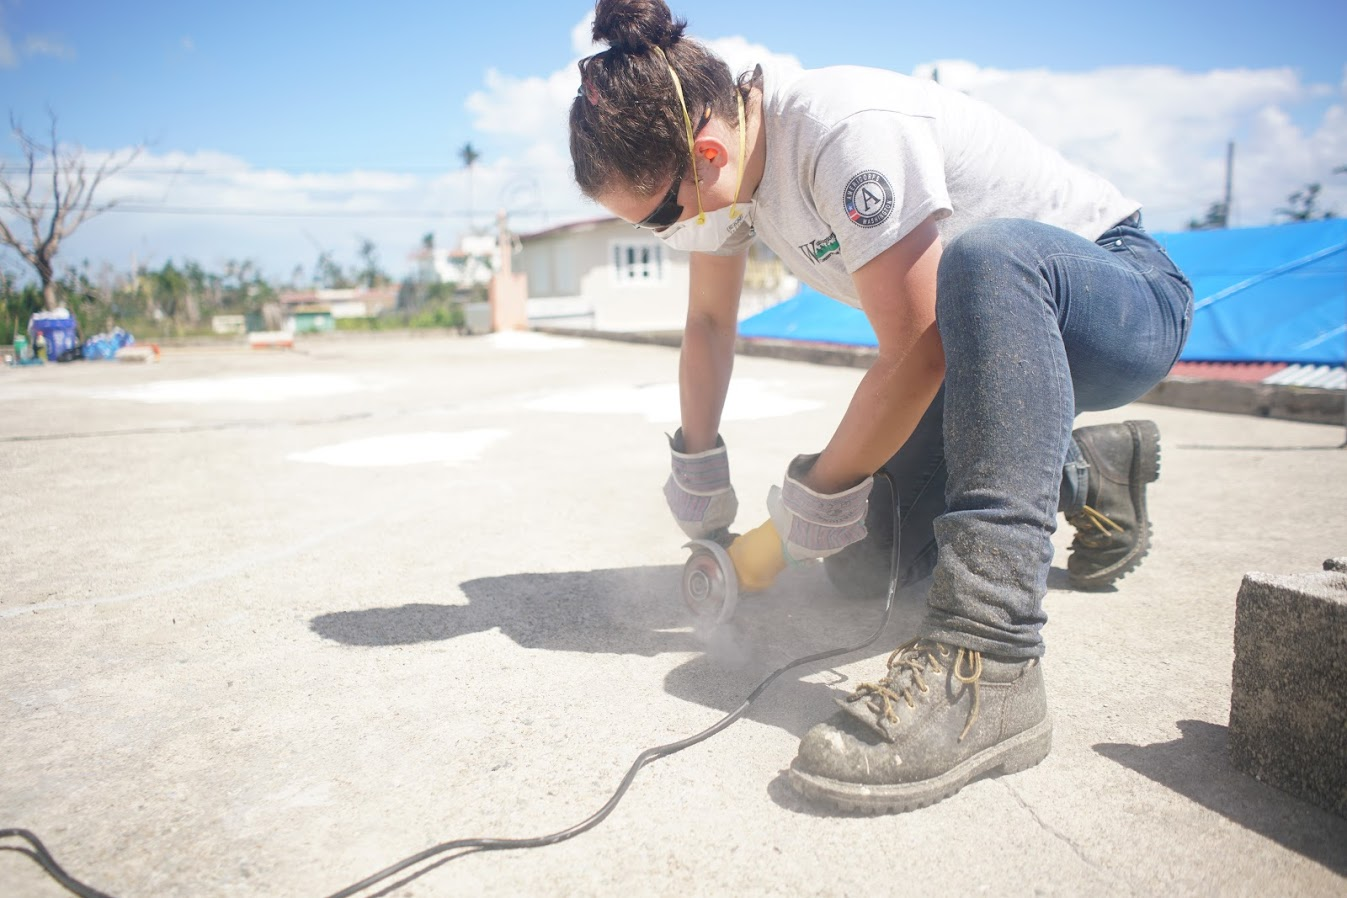 A person kneels on concrete to conduct a roof repair in a sunny climate.